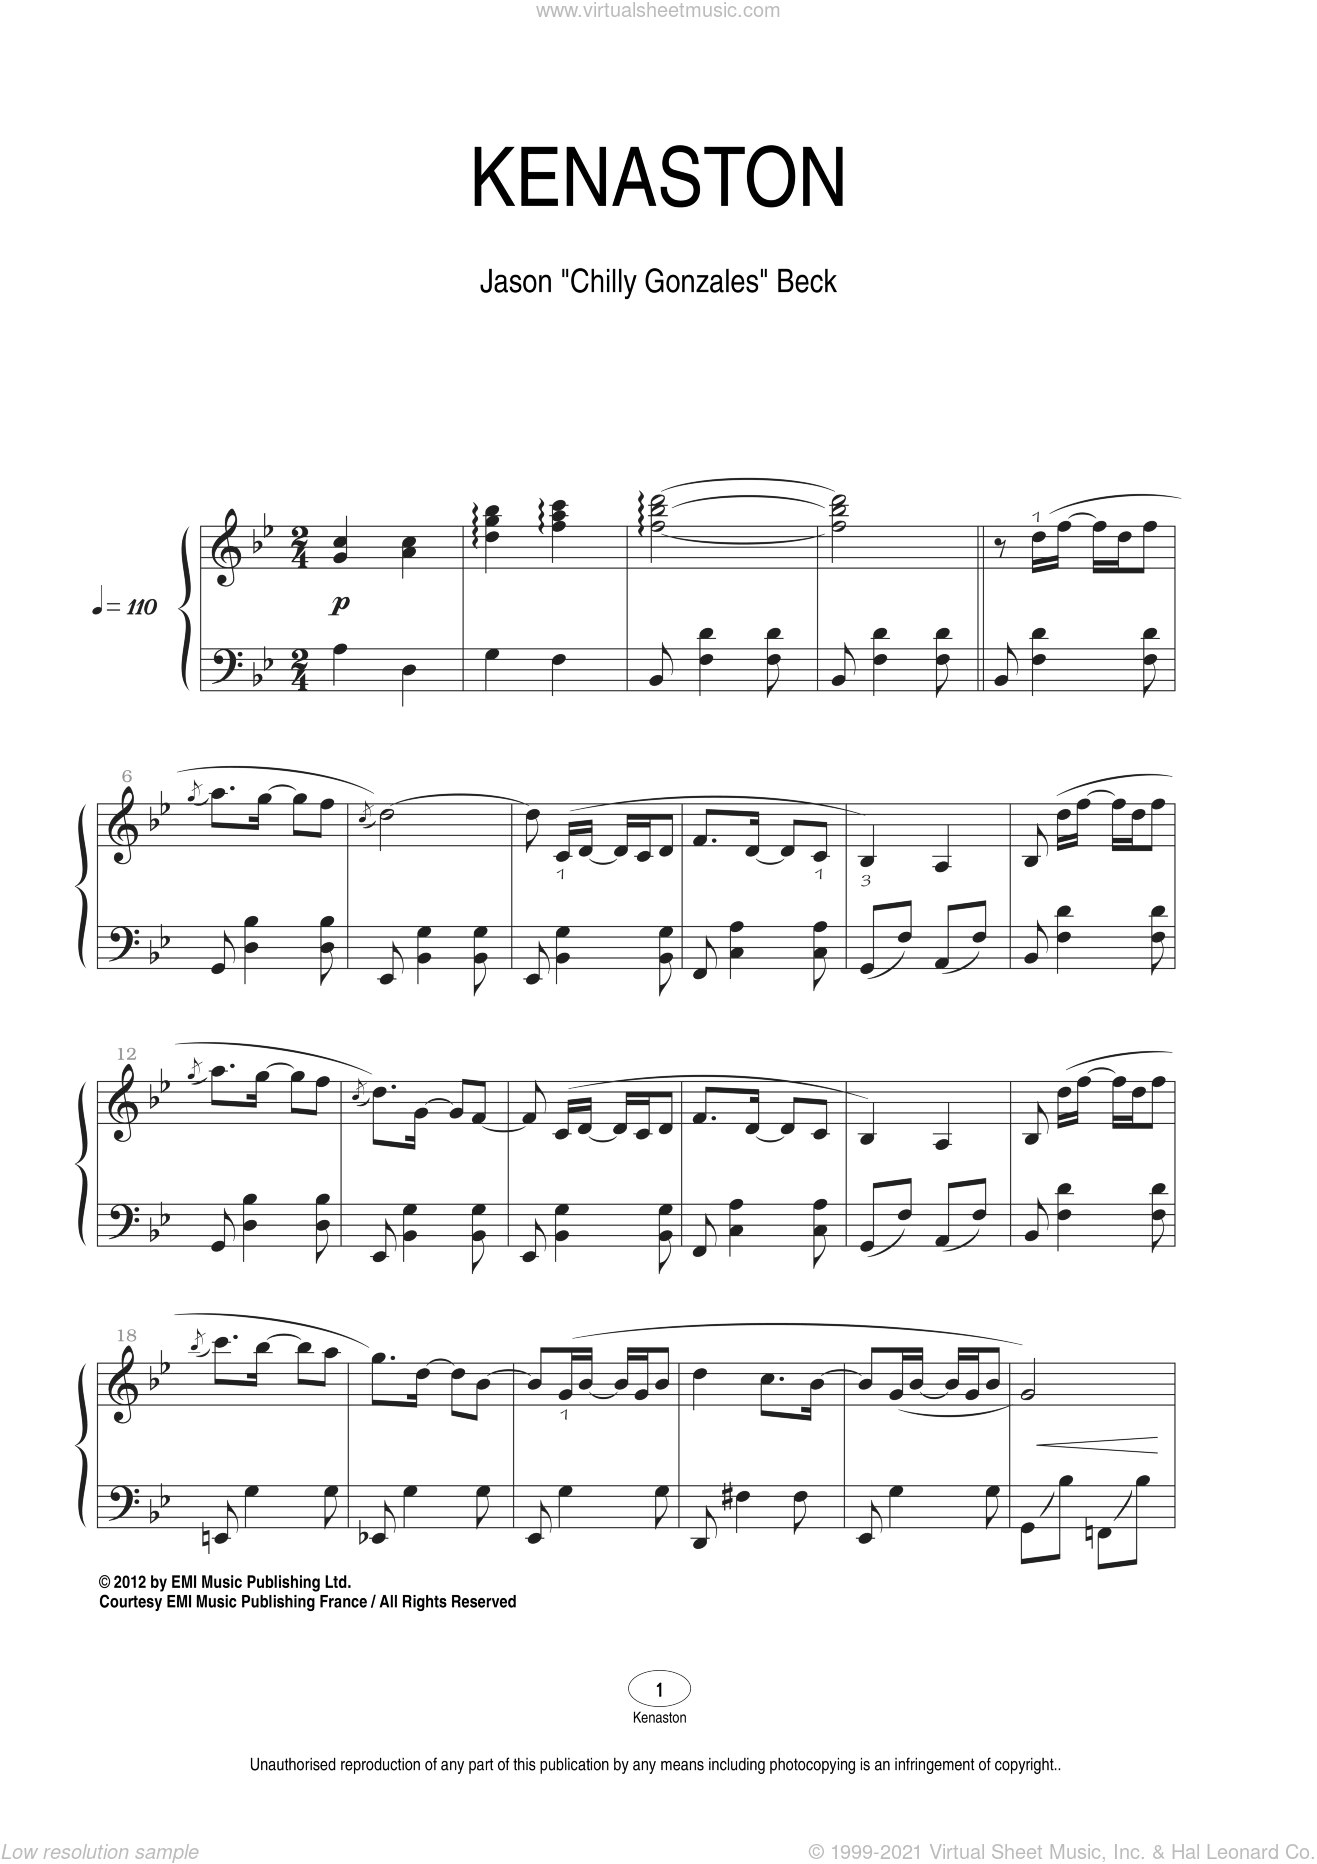 Kenaston sheet music for piano solo by Chilly Gonzales and Jason Beck, classical score, intermediate skill level